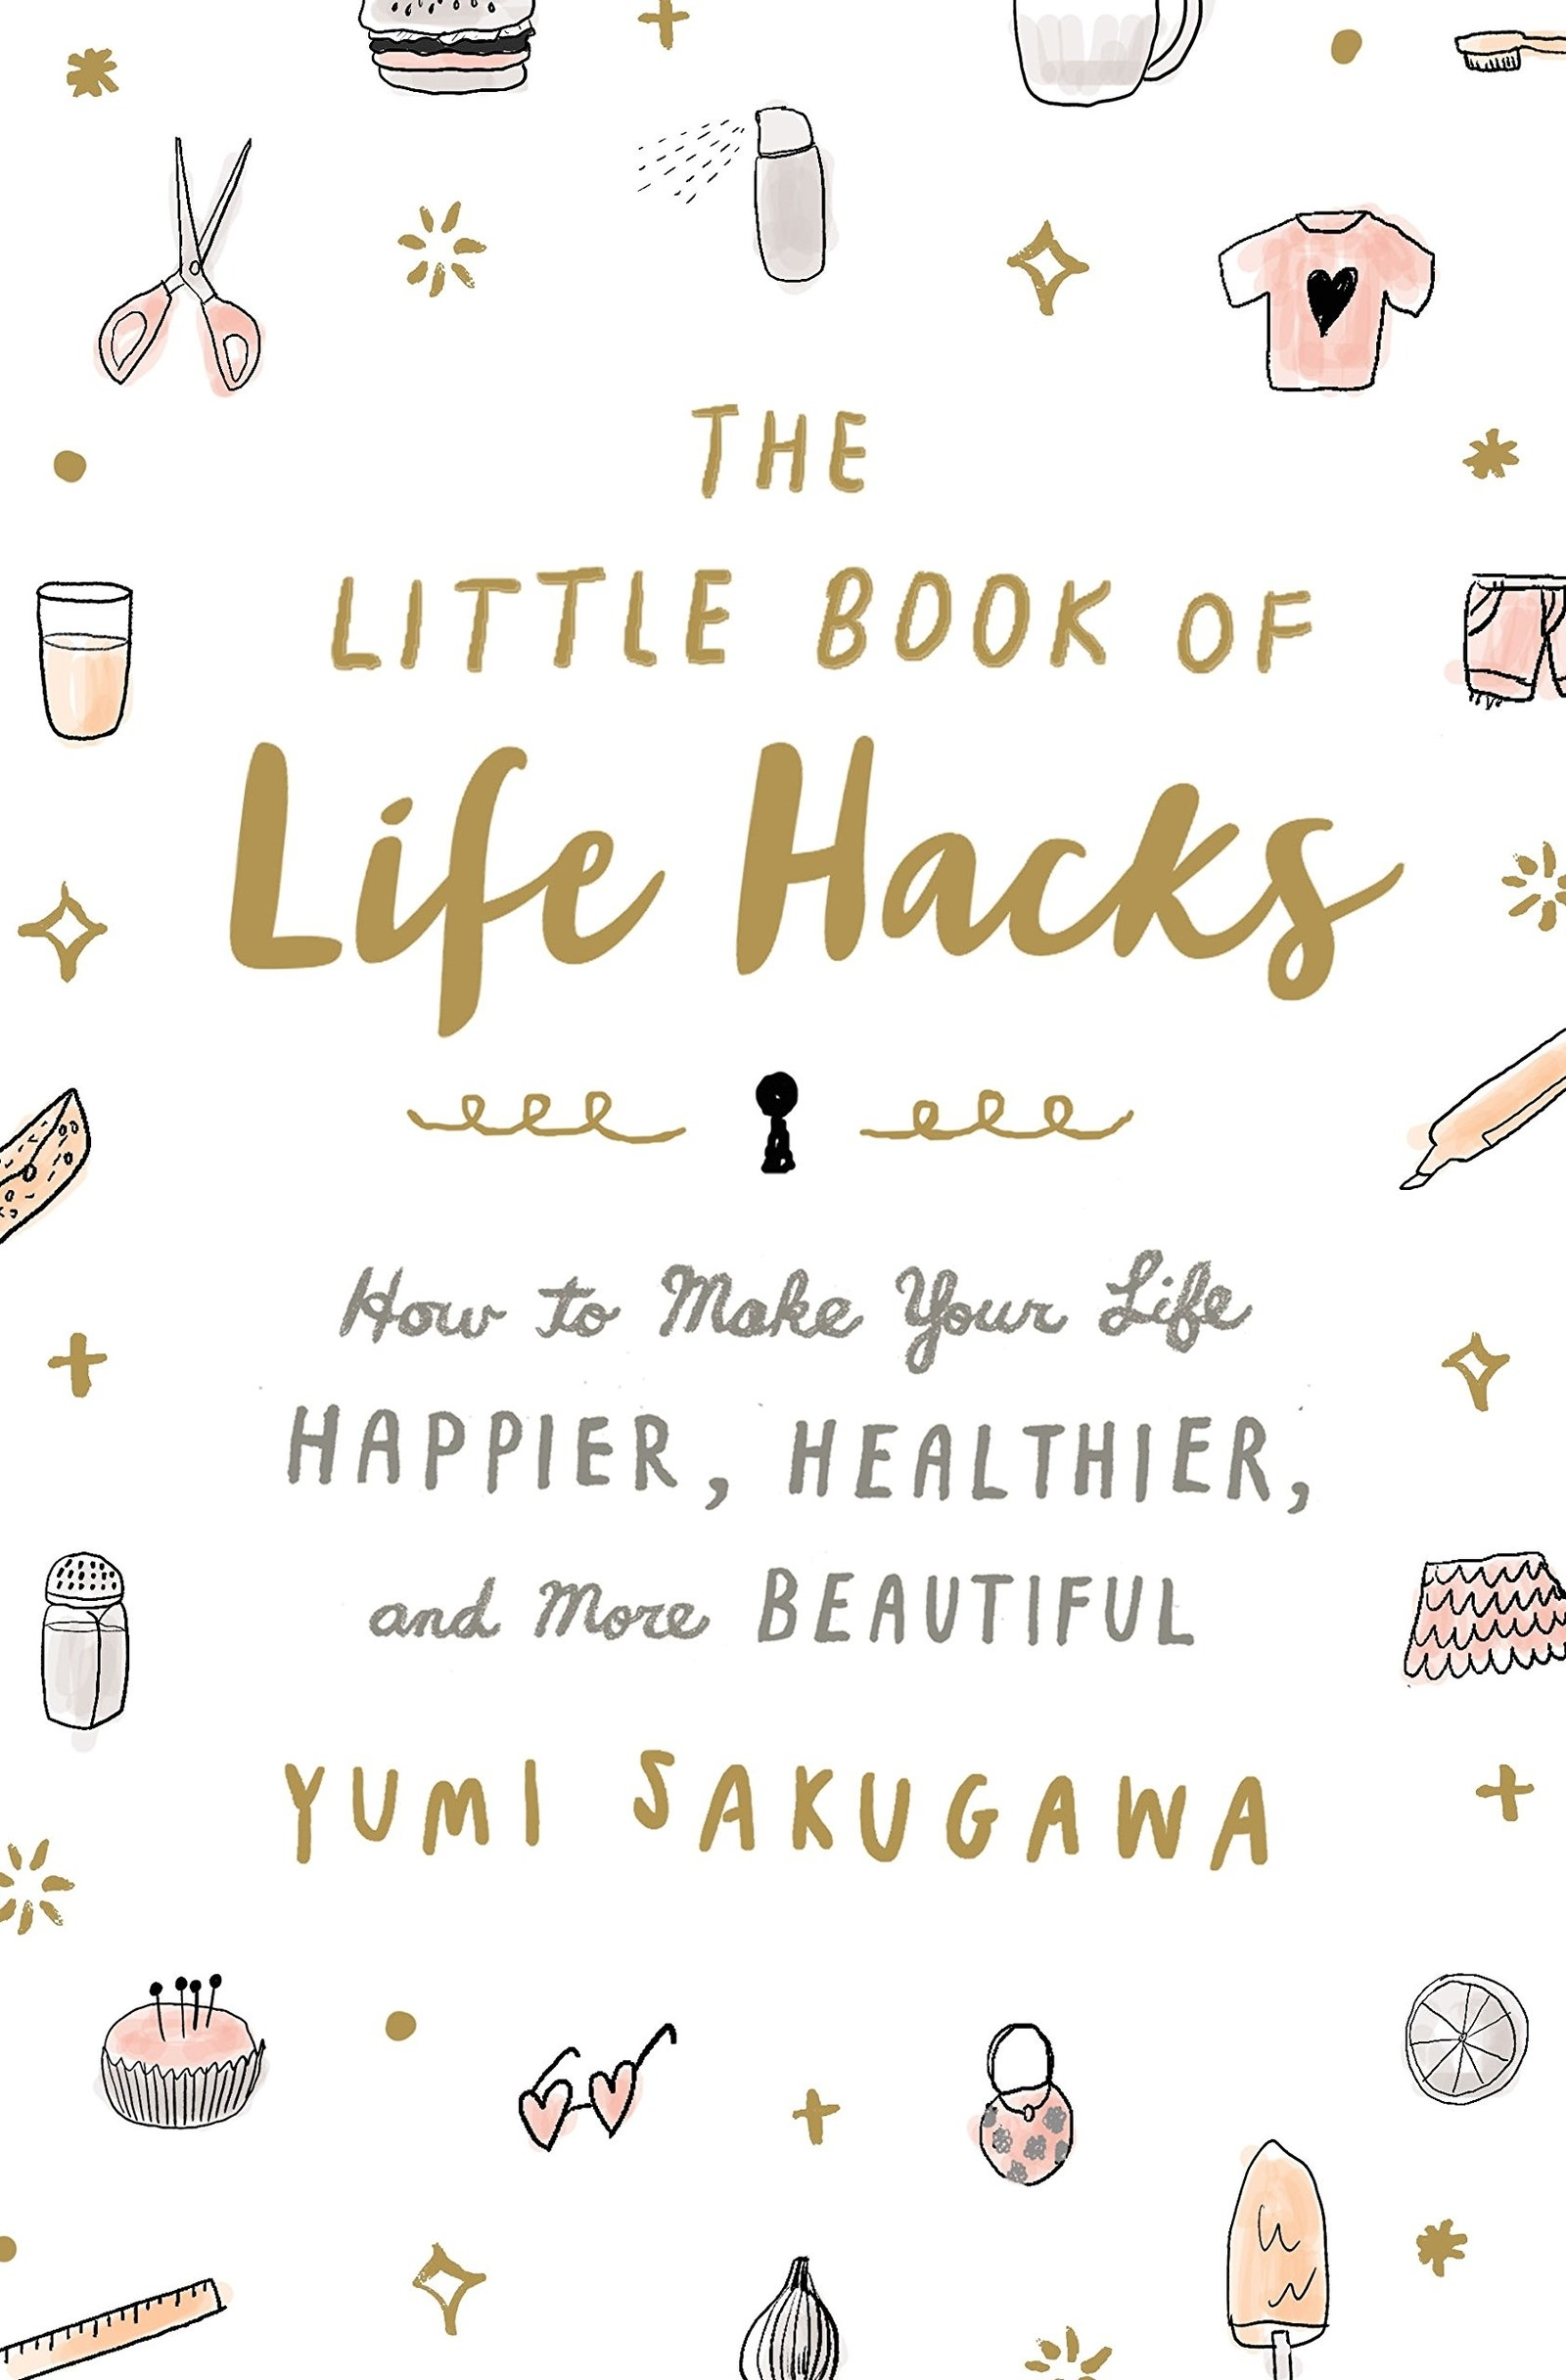 The cover of The Little Book of Life Hacks: How to Make Your Life Happier, Healthier, and More Beautiful